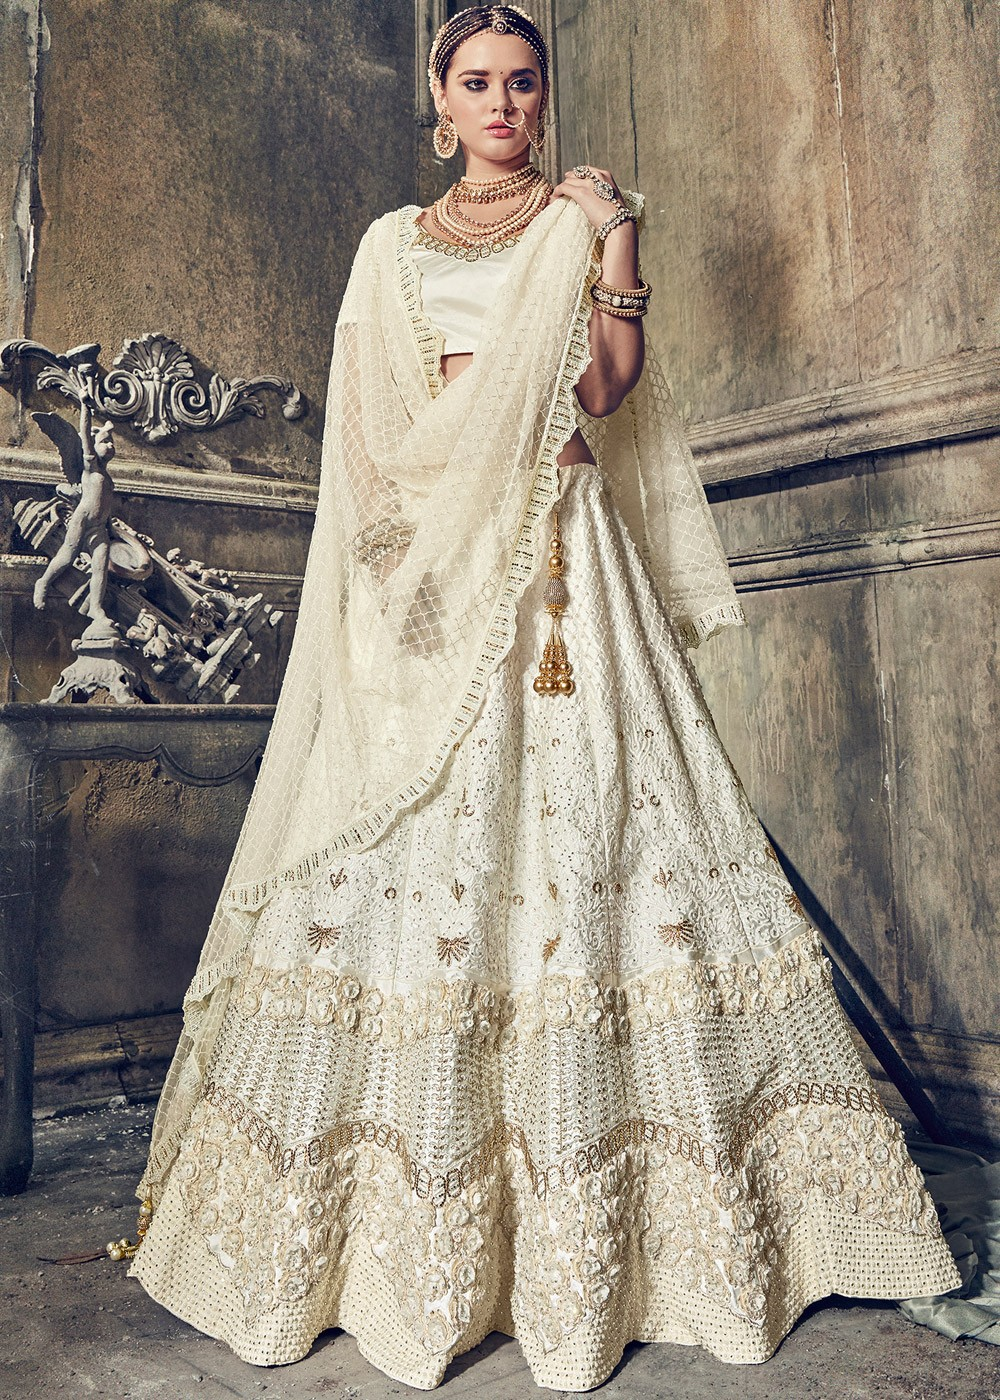 Bridal Lehenga Buy Indian Bridal Lehenga Choli Online USA UK - White Indian Wedding Dress